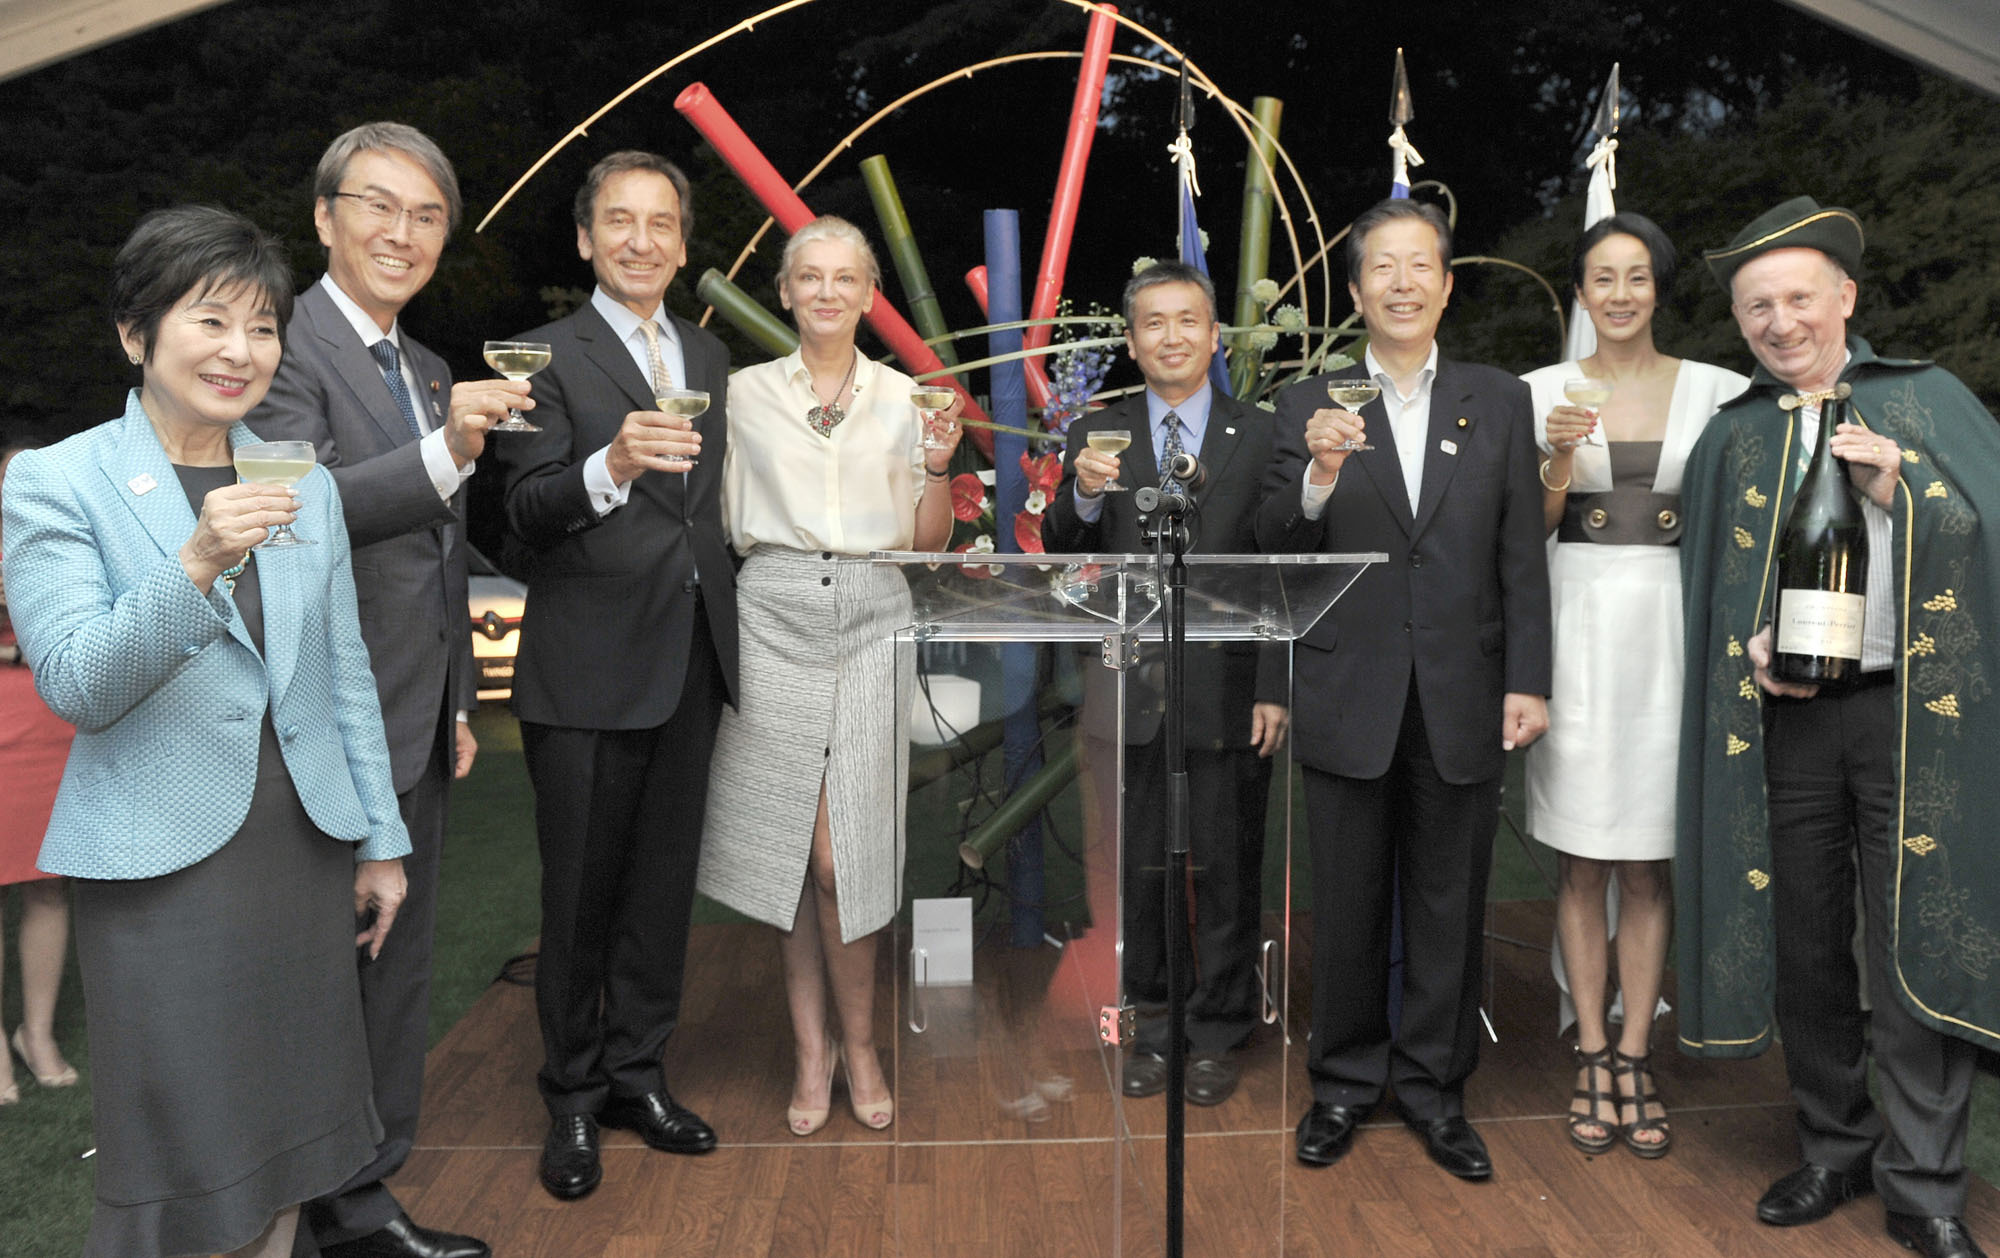 French Ambassador Thierry Dana (third from left) and his wife Florence Godfernaux (fourth from left) raise their glasses with, from left, former House of Councillors Vice President Akiko Santo; economic revitalization minister Nobuteru Ishihara; astronaut Koichi Wakata; Komeito President Natsuo Yamaguchi; France 2016 Sightseeing Ambassador Eriko Nakamura; and Laurent-Perrier Champagne Brand Ambassador Philippe Sauzedde during a reception celebrating the country's National Day at the ambassador's residence in Tokyo on July 14. | YOSHIAKI MIURA